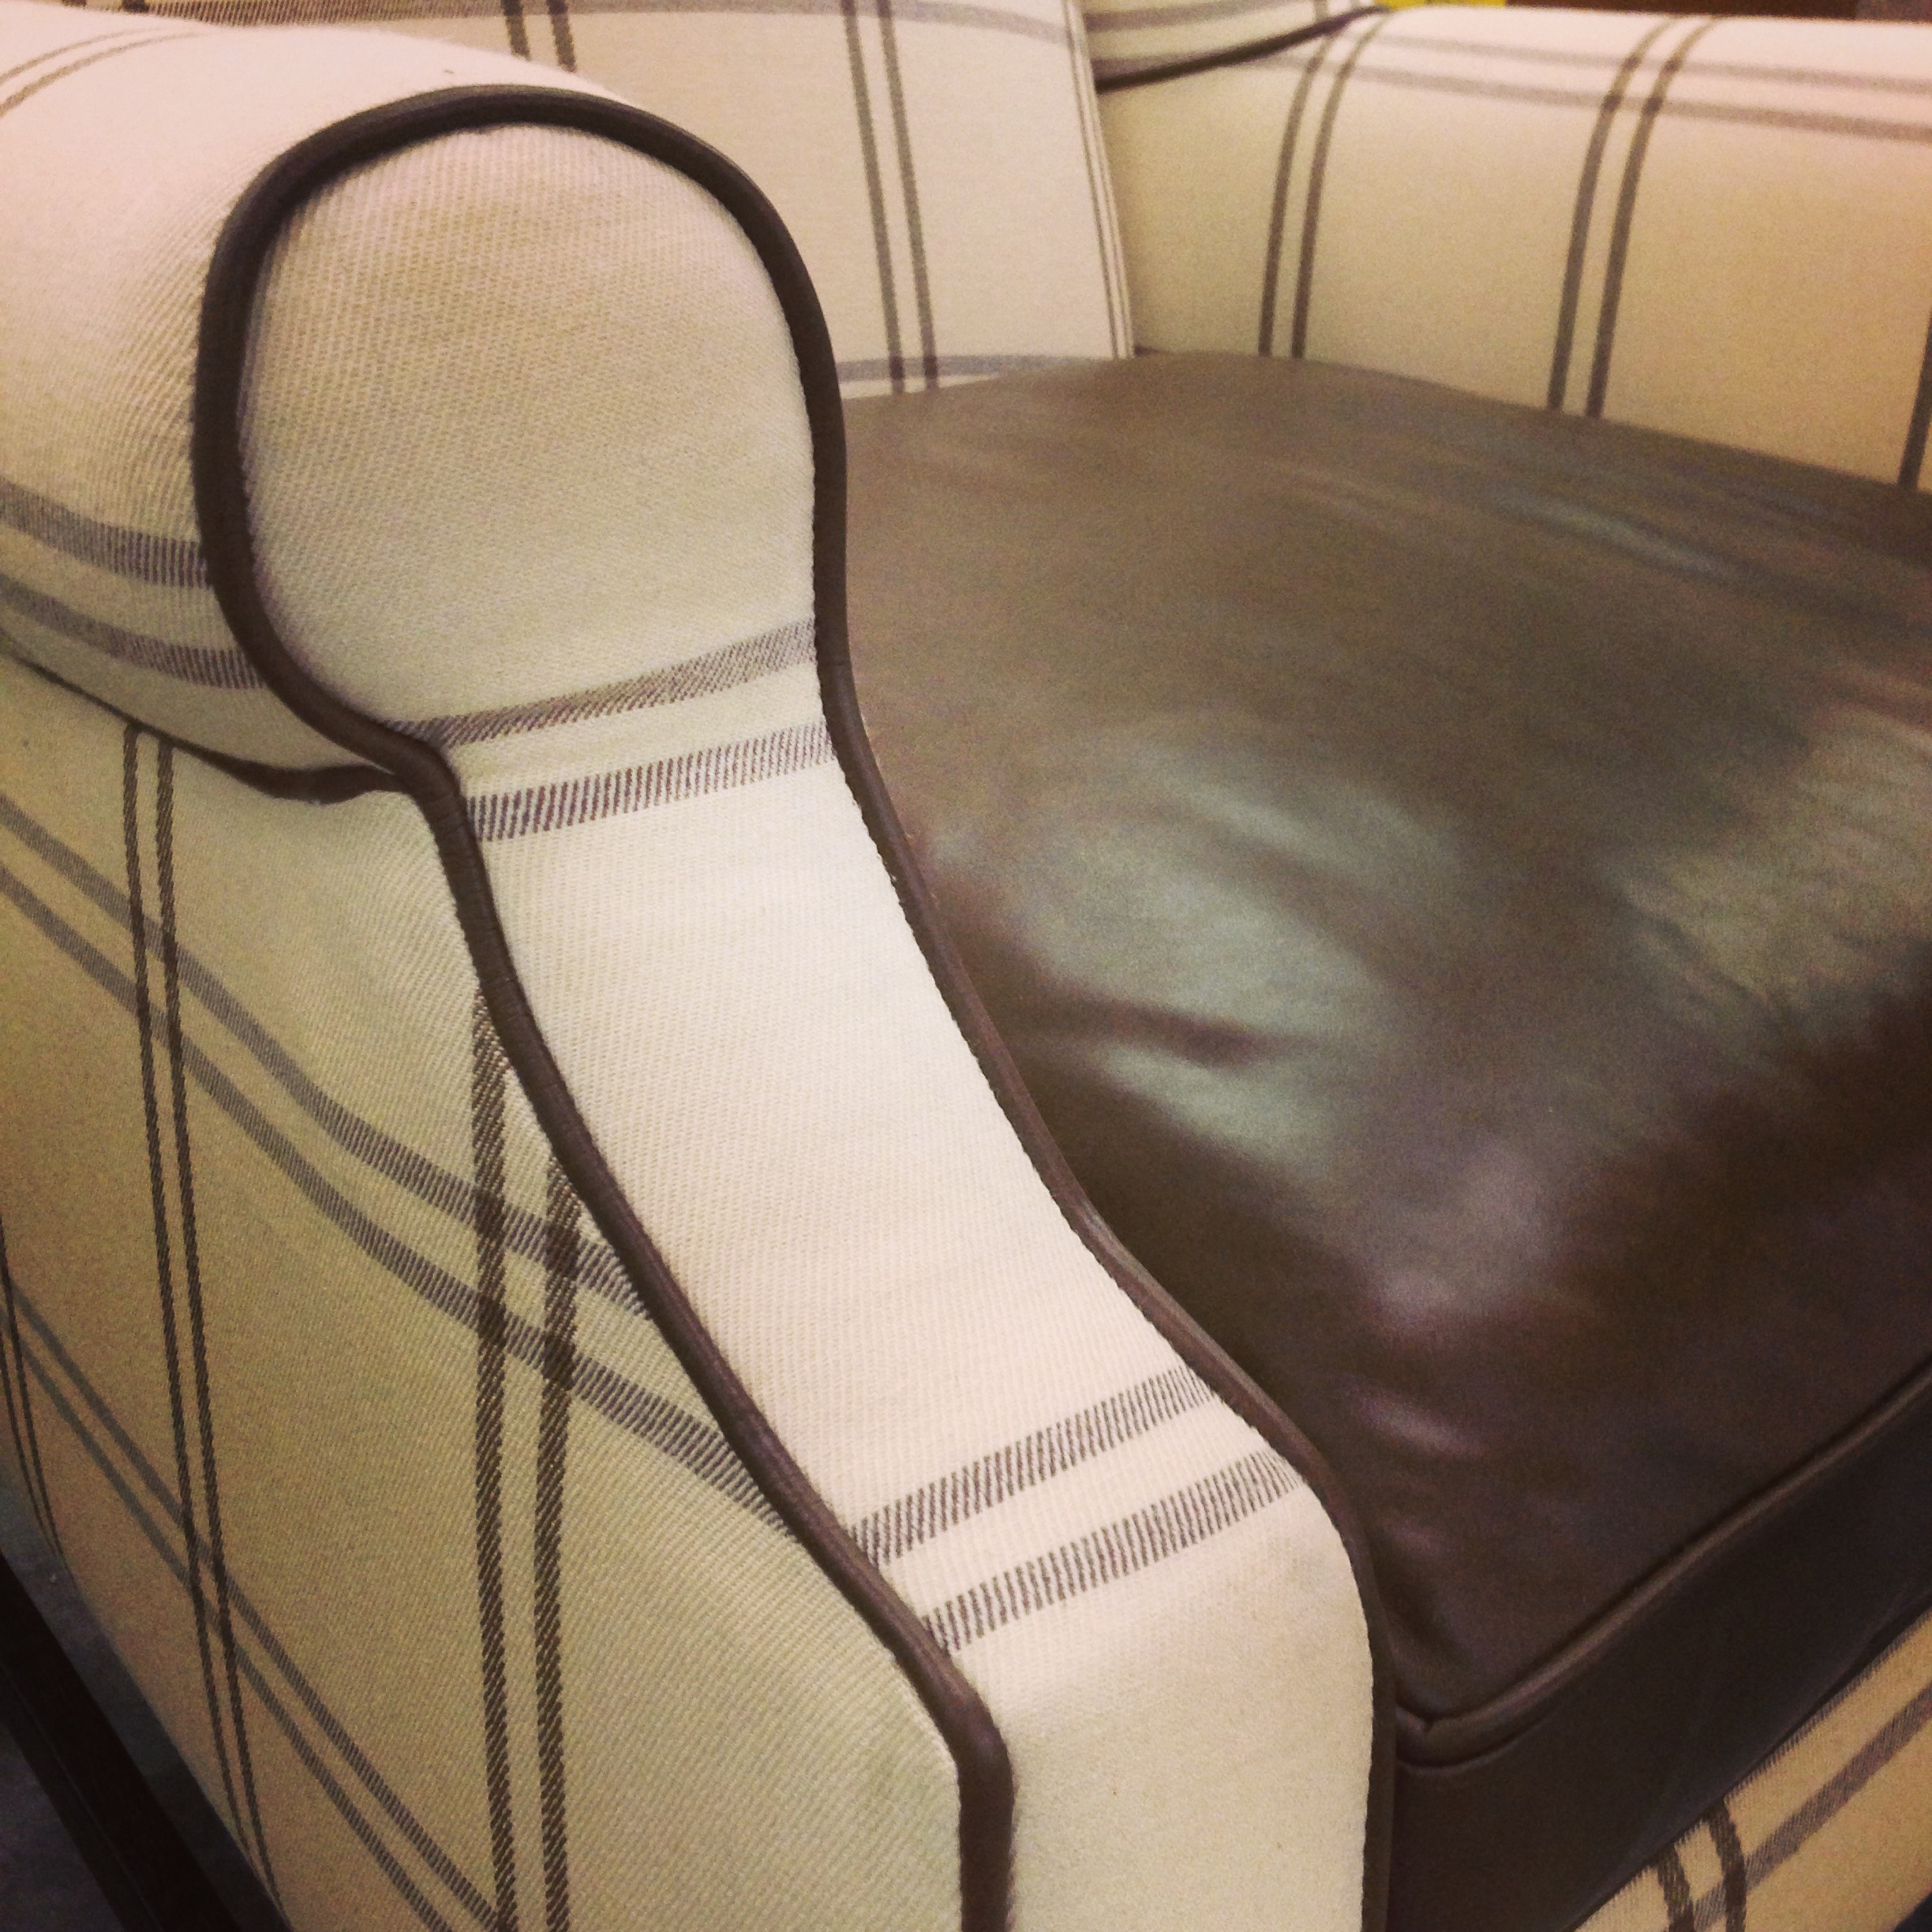 Custom detailing on chair with fabric and leather welting | Carla Aston, Designer #chair